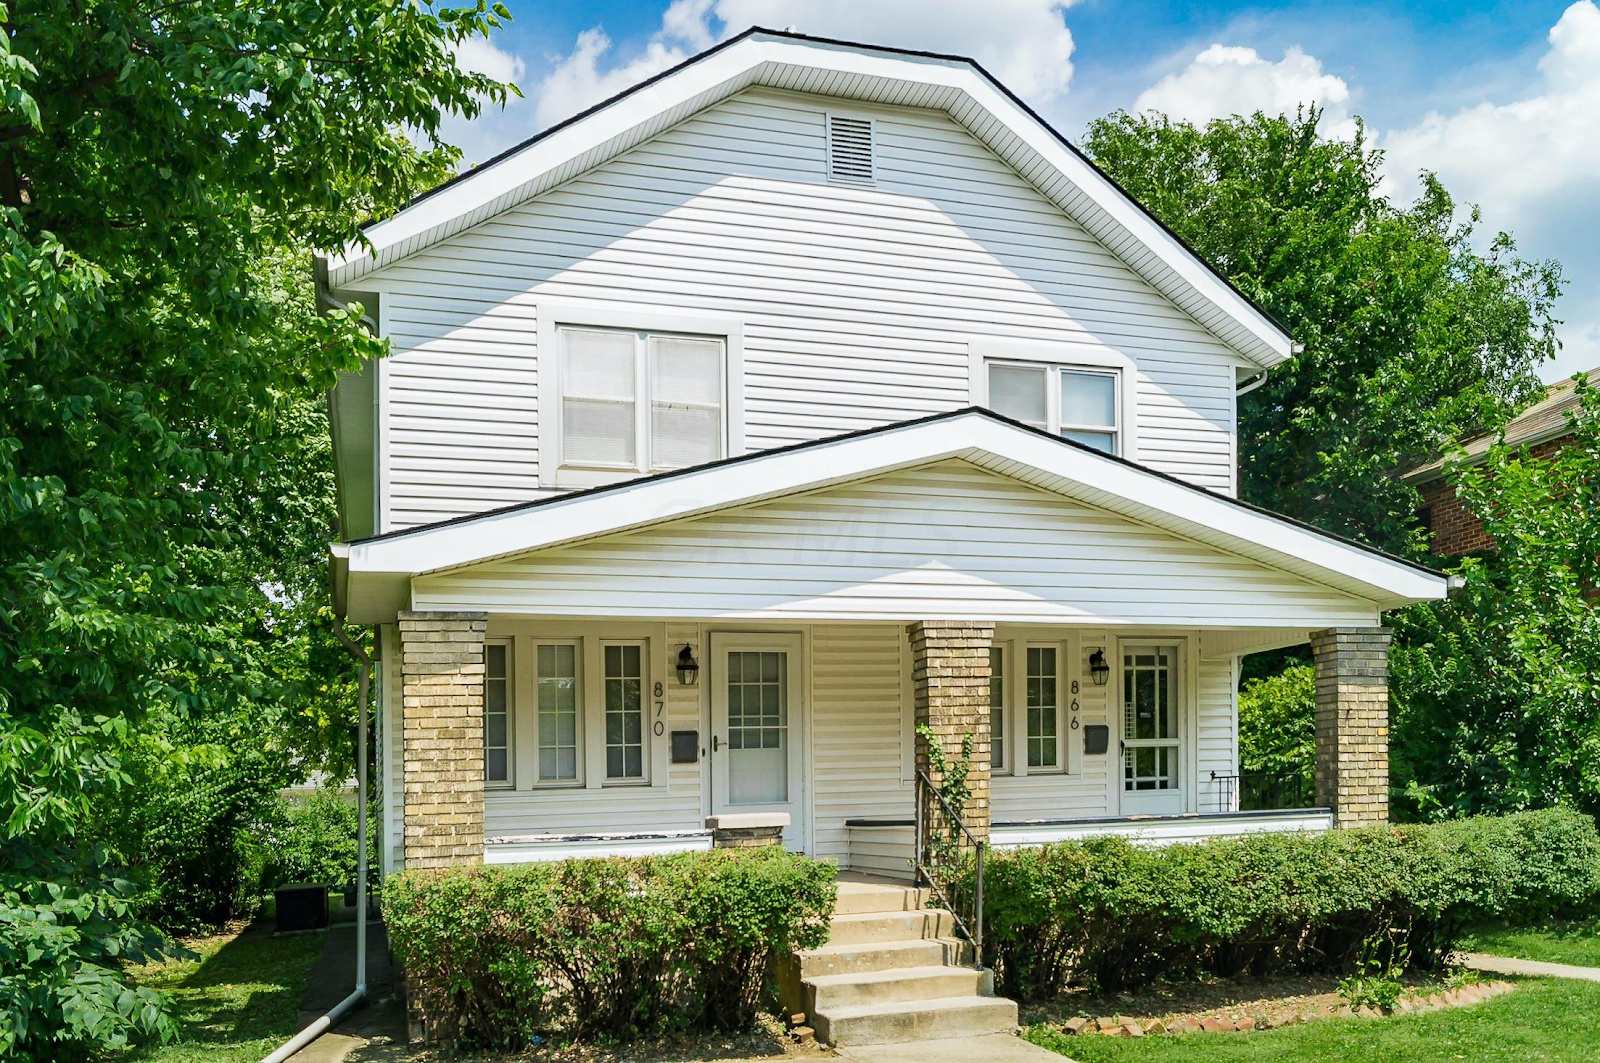 Duplex house in Grandview Heights.